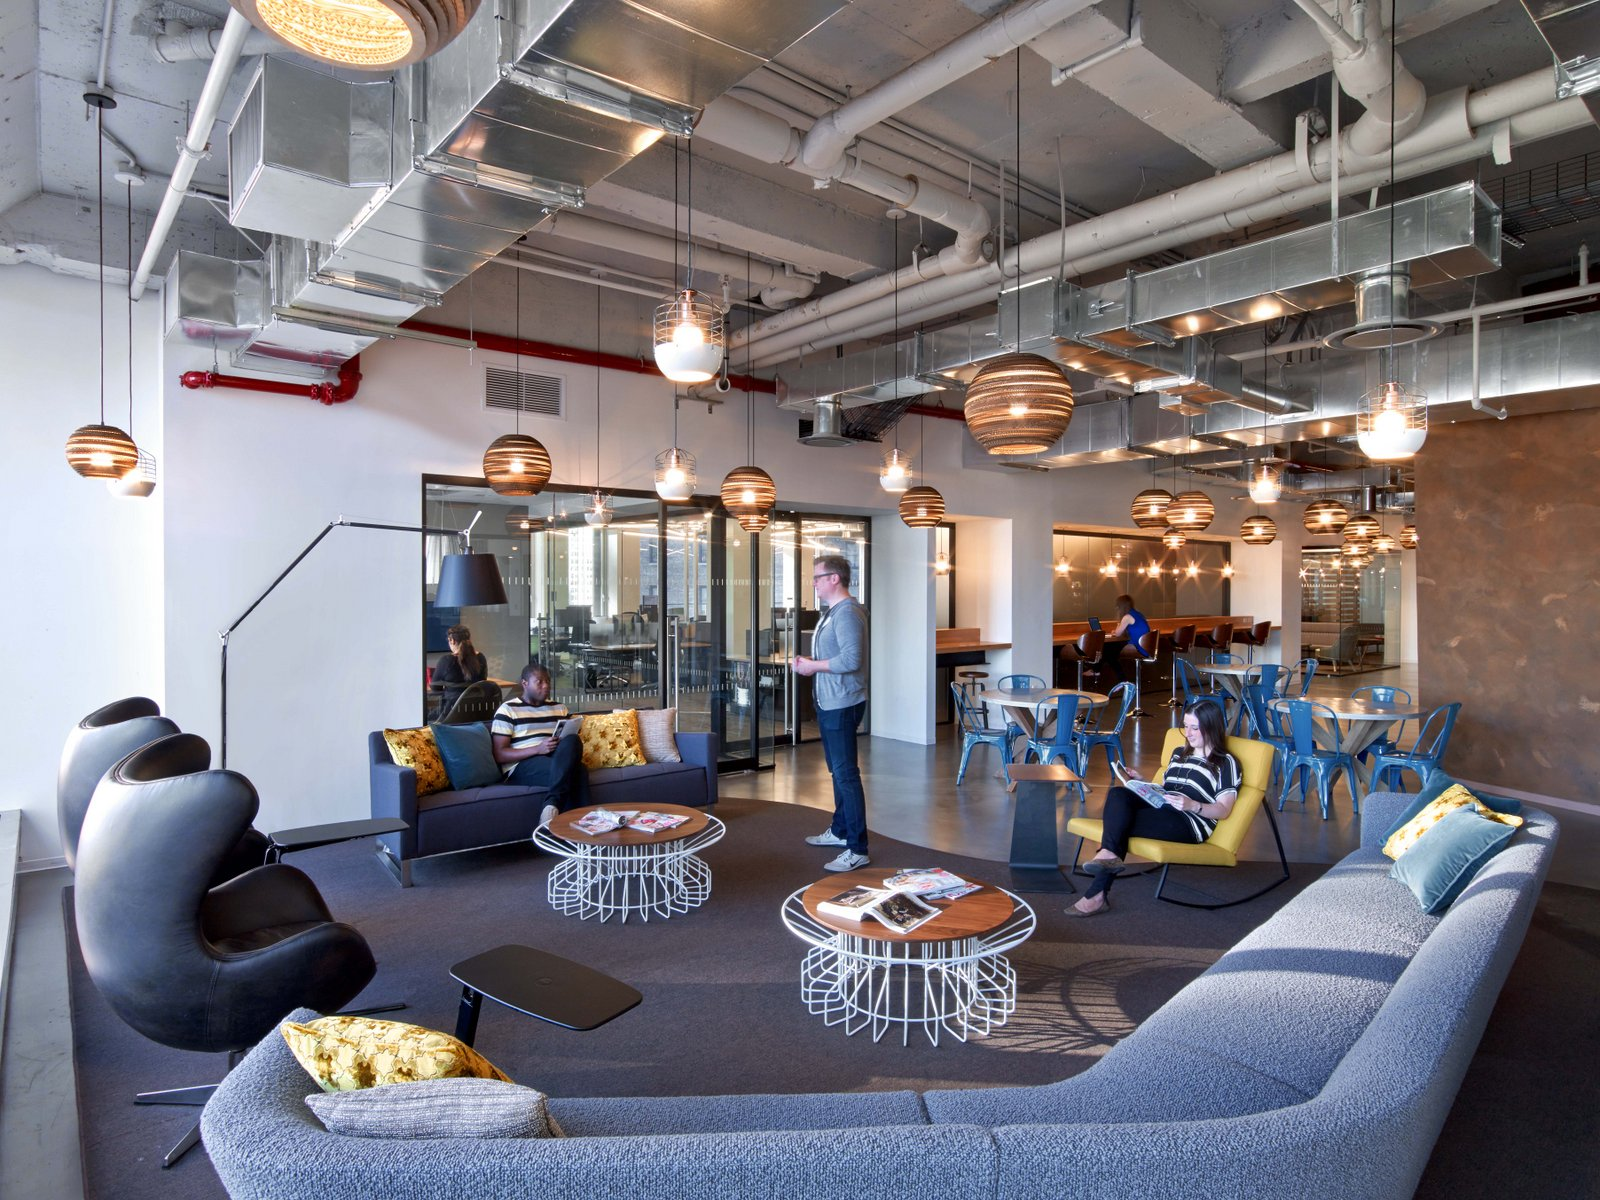 Condé Nast Entertainment Office Workspace Design